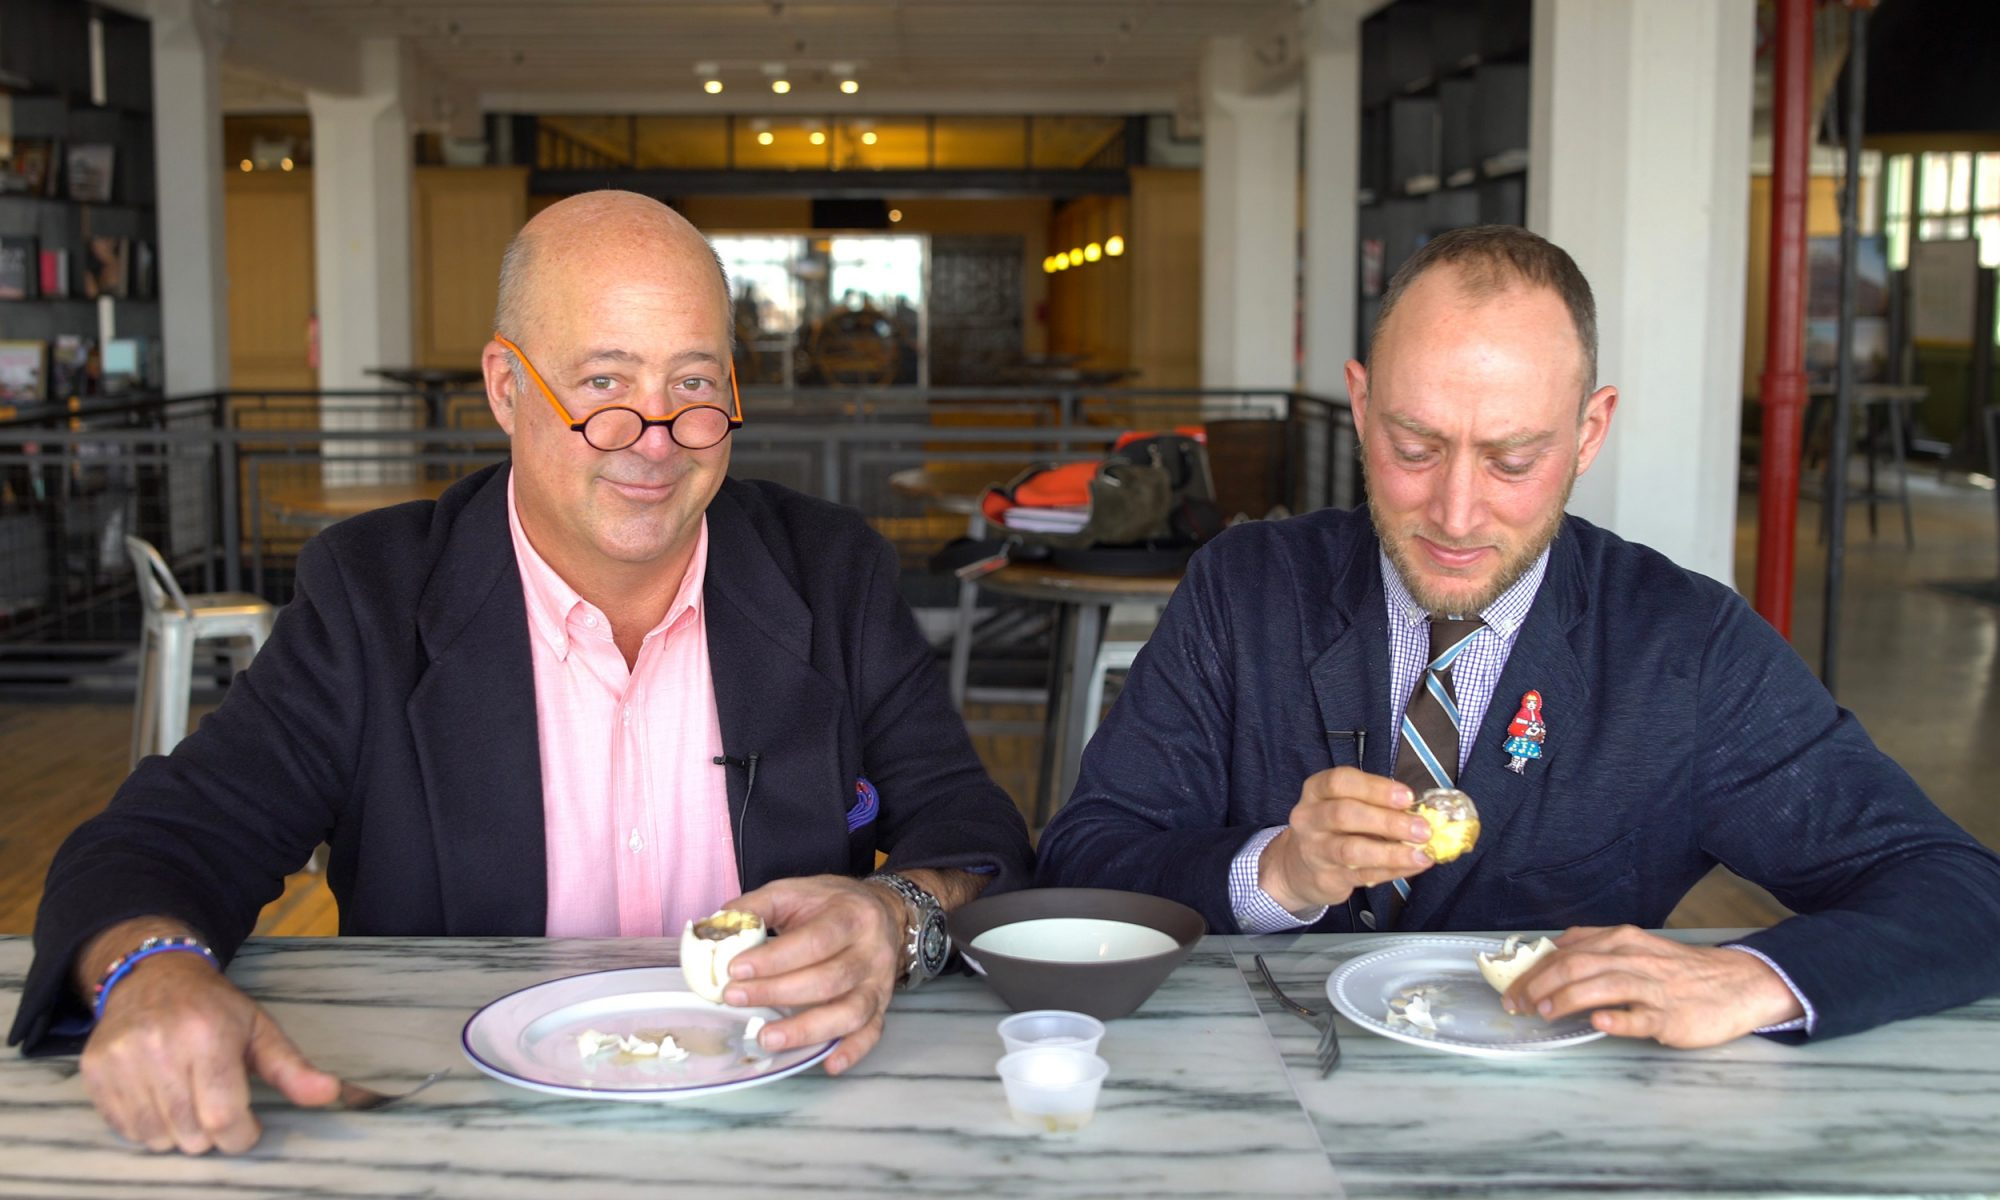 EC: Balut: Is It Gross? with Special Guest Andrew Zimmern